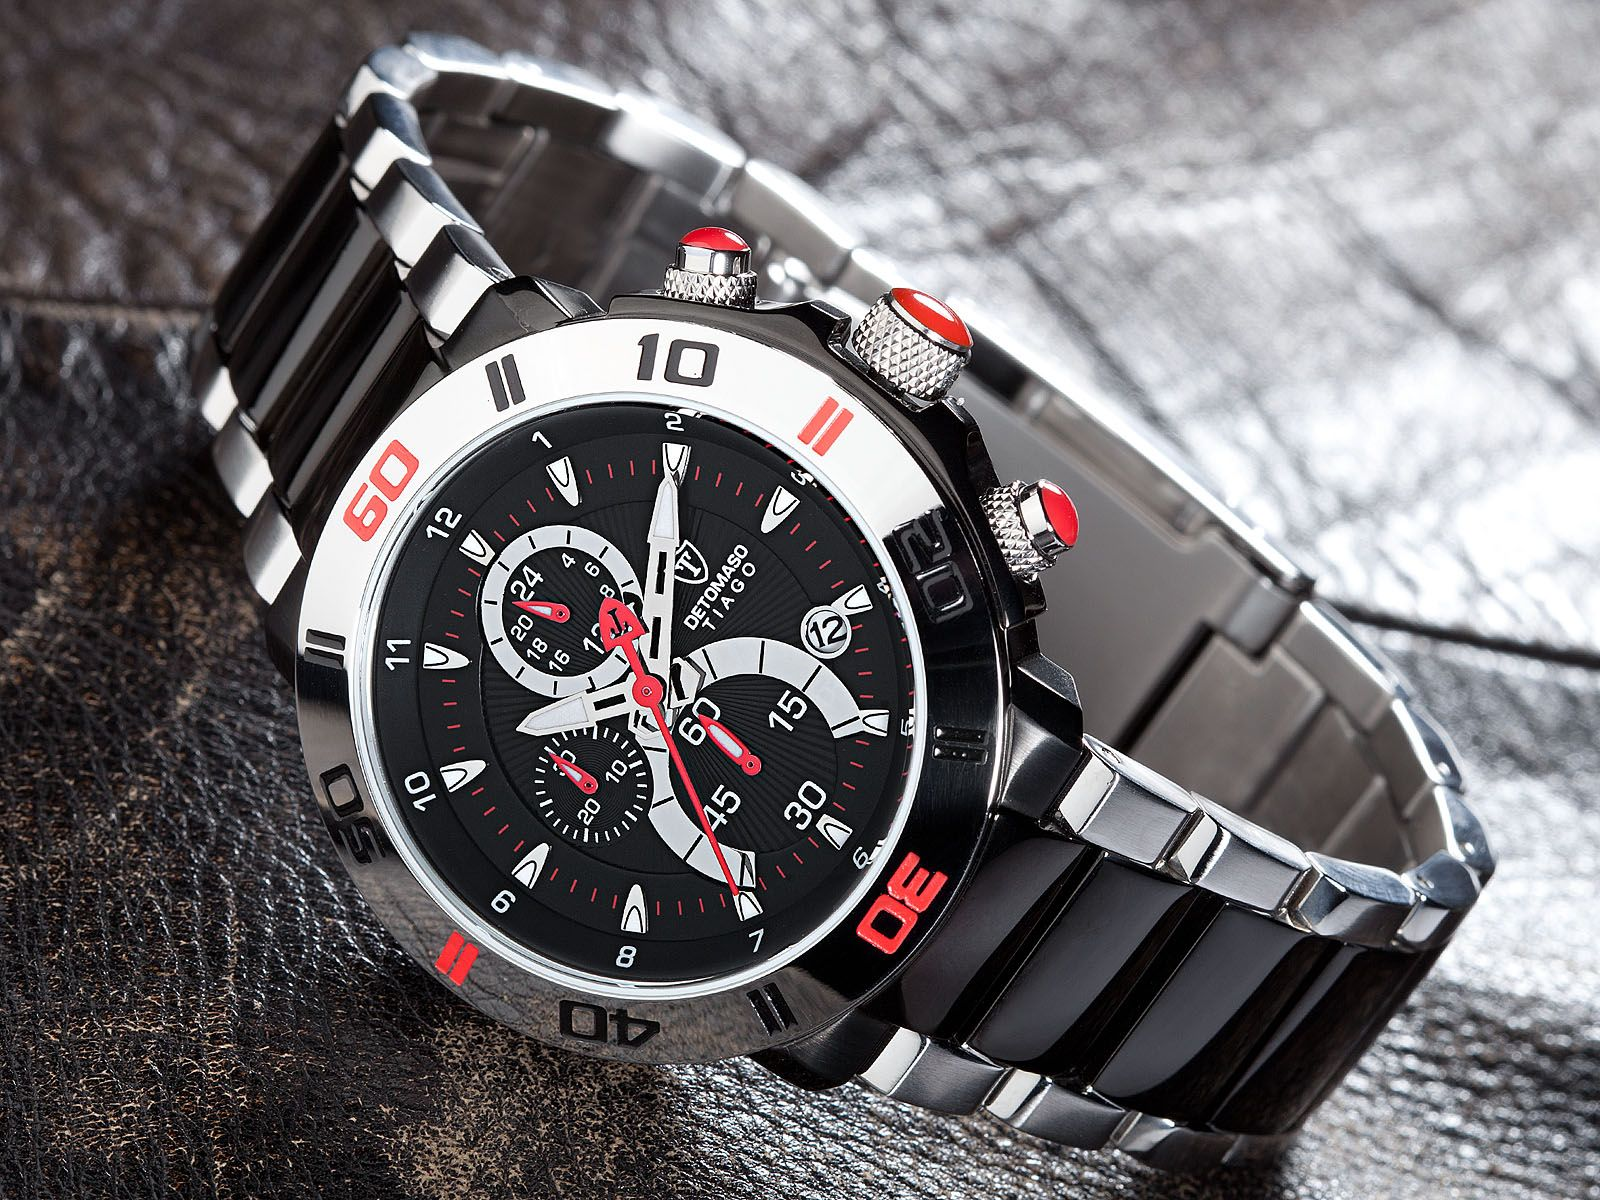 Classic with a sporty tune: THe TIAGO Chronograph. By DETOMASO